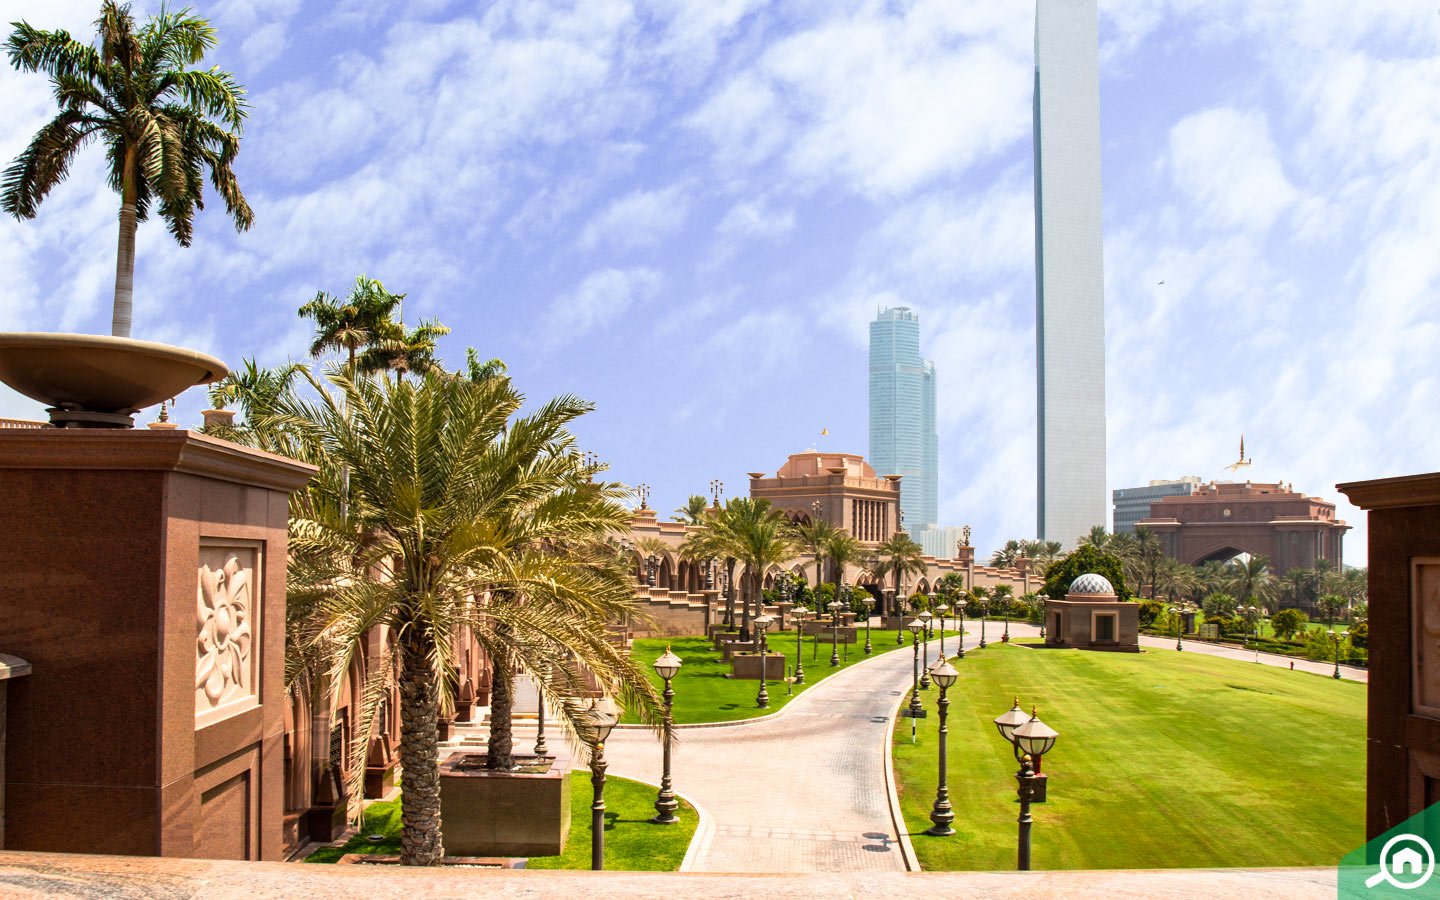 Location of Emirates Palace hotel Abu Dhabi